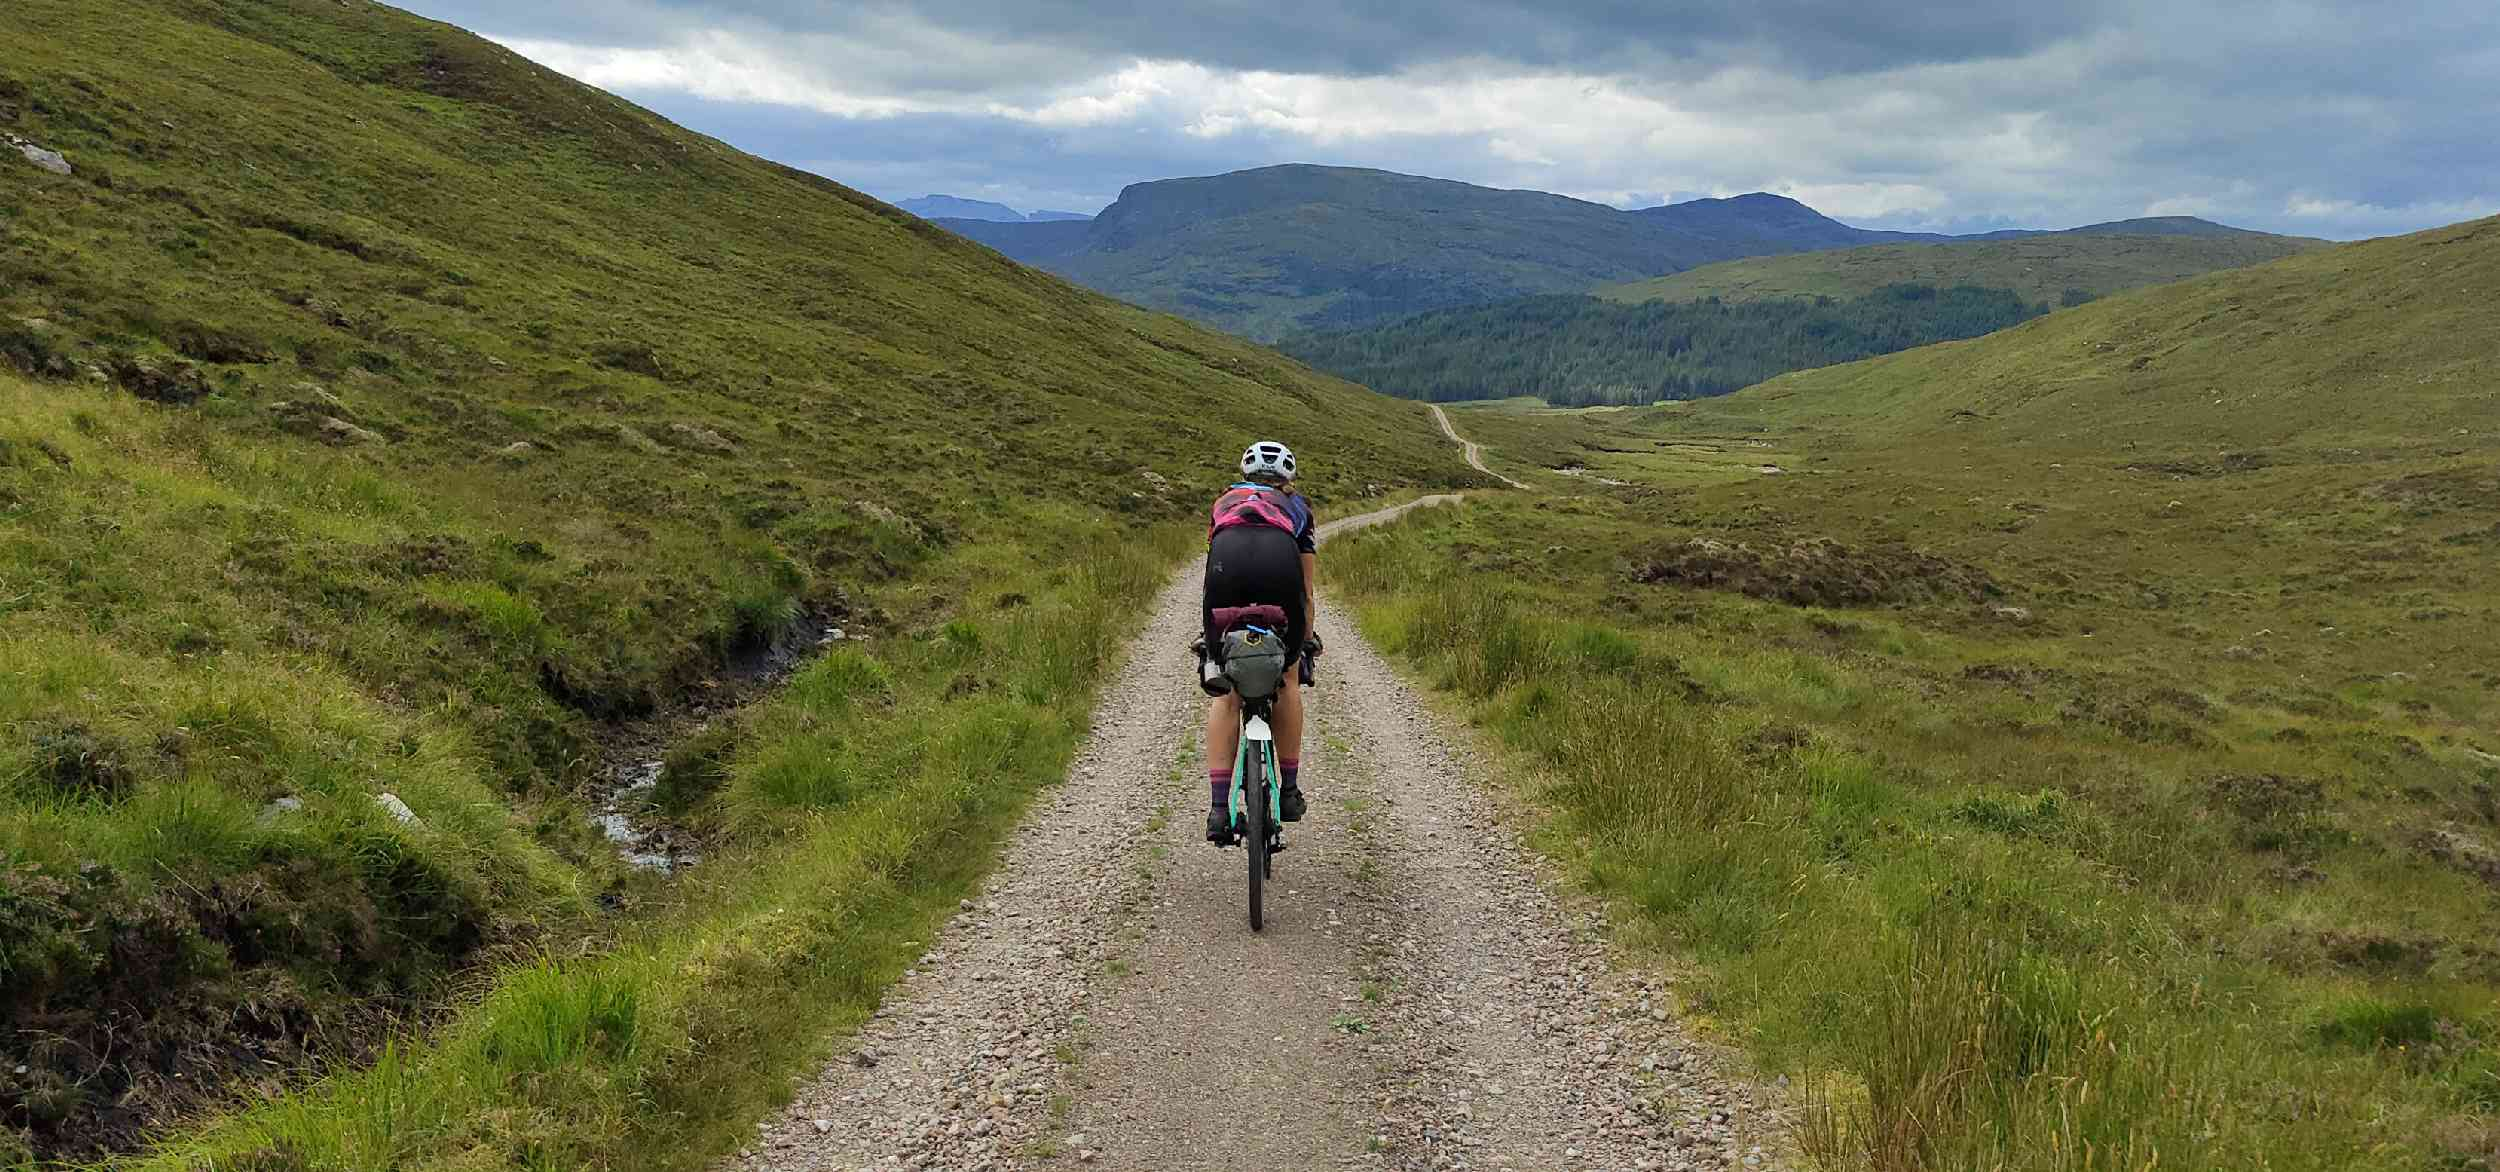 A cyclist rides away from the camera down a gravel trail